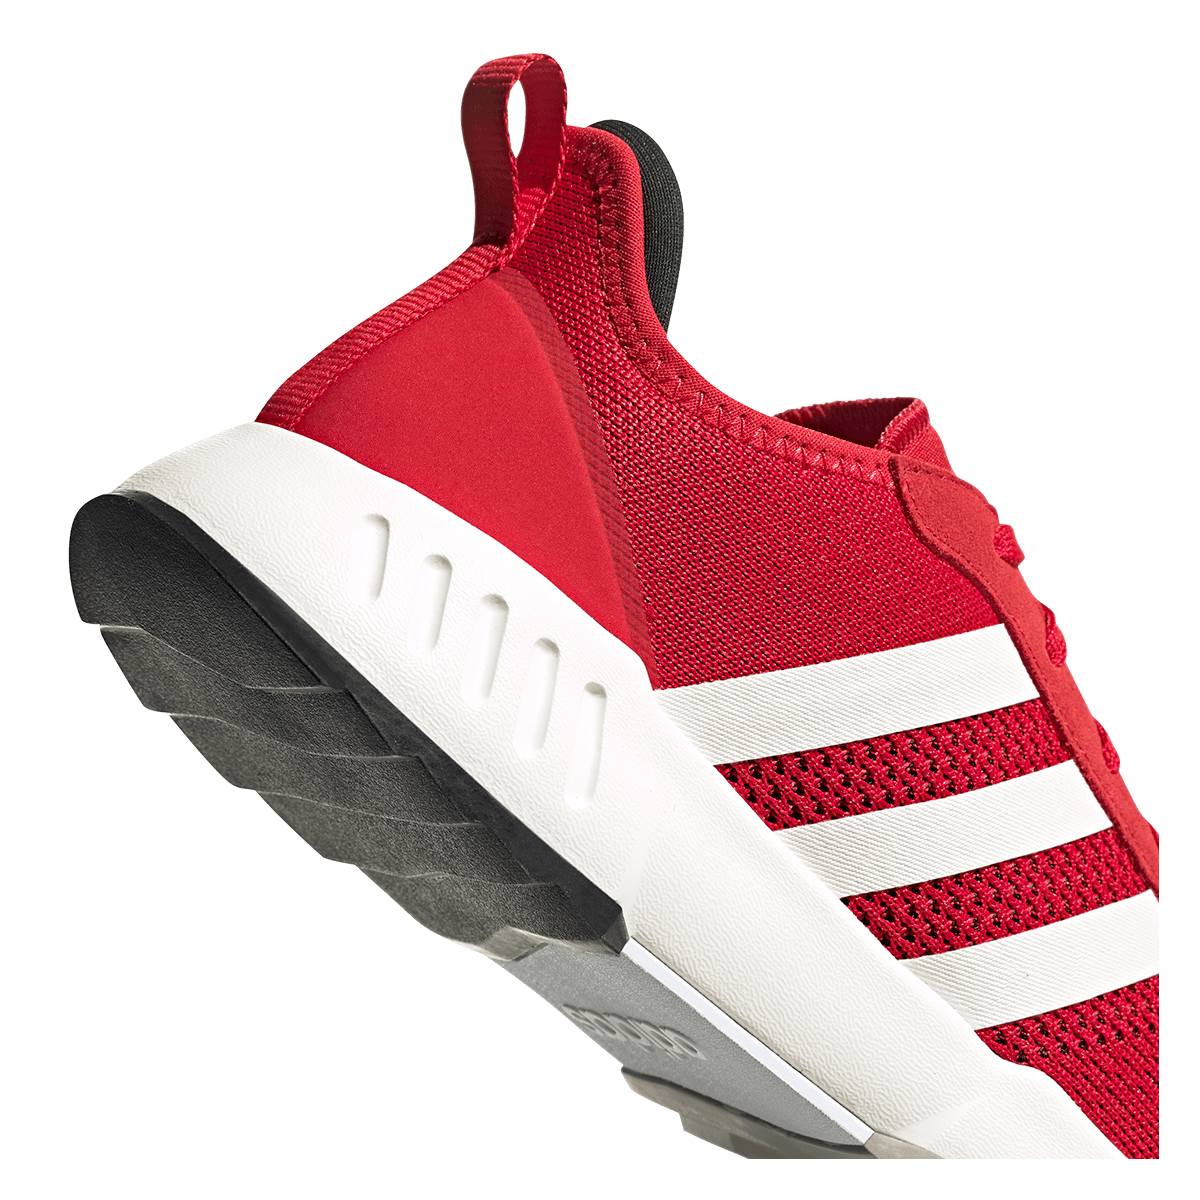 Chaussures adidas Phosphere rouge